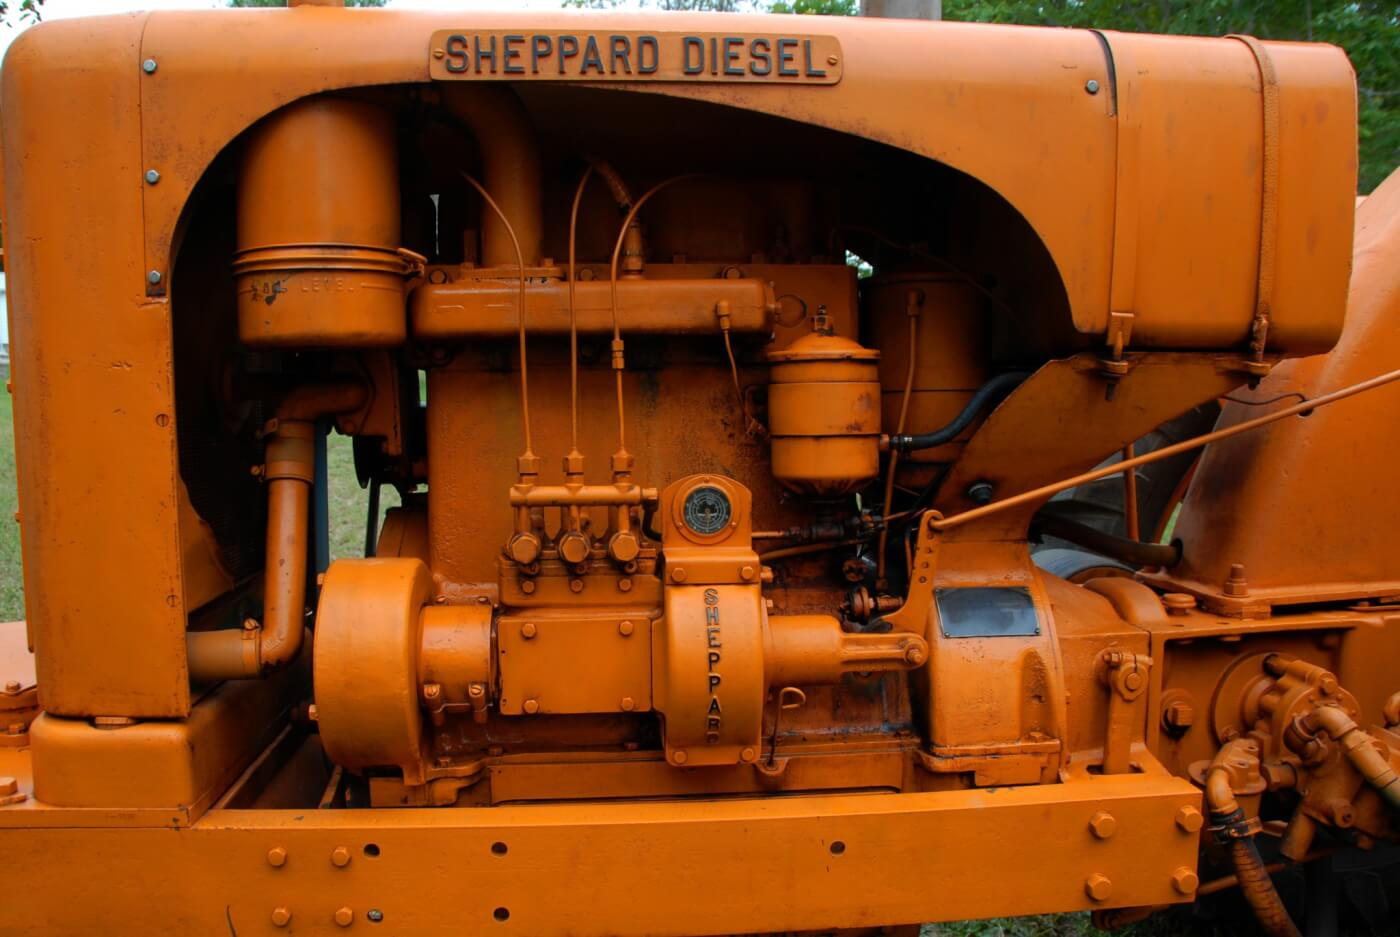 The SD-3's 6B engine was in indirect-injected three-cylinder with four main bearings, wet sleeves and a 22:1 compression ratio. It was direct start and had a cold start aid in the form of an electric coil onto which was sprayed diesel fuel. The system didn't work very well and was most often disabled because it tended to allow air into the injection system. At 1,660 lbs, the engine is massive for its small 188 ci displacement. The 6E engine was optional and had a quarter-inch more bore. Version of these engines were offered for industrial use, marine applications or generators.